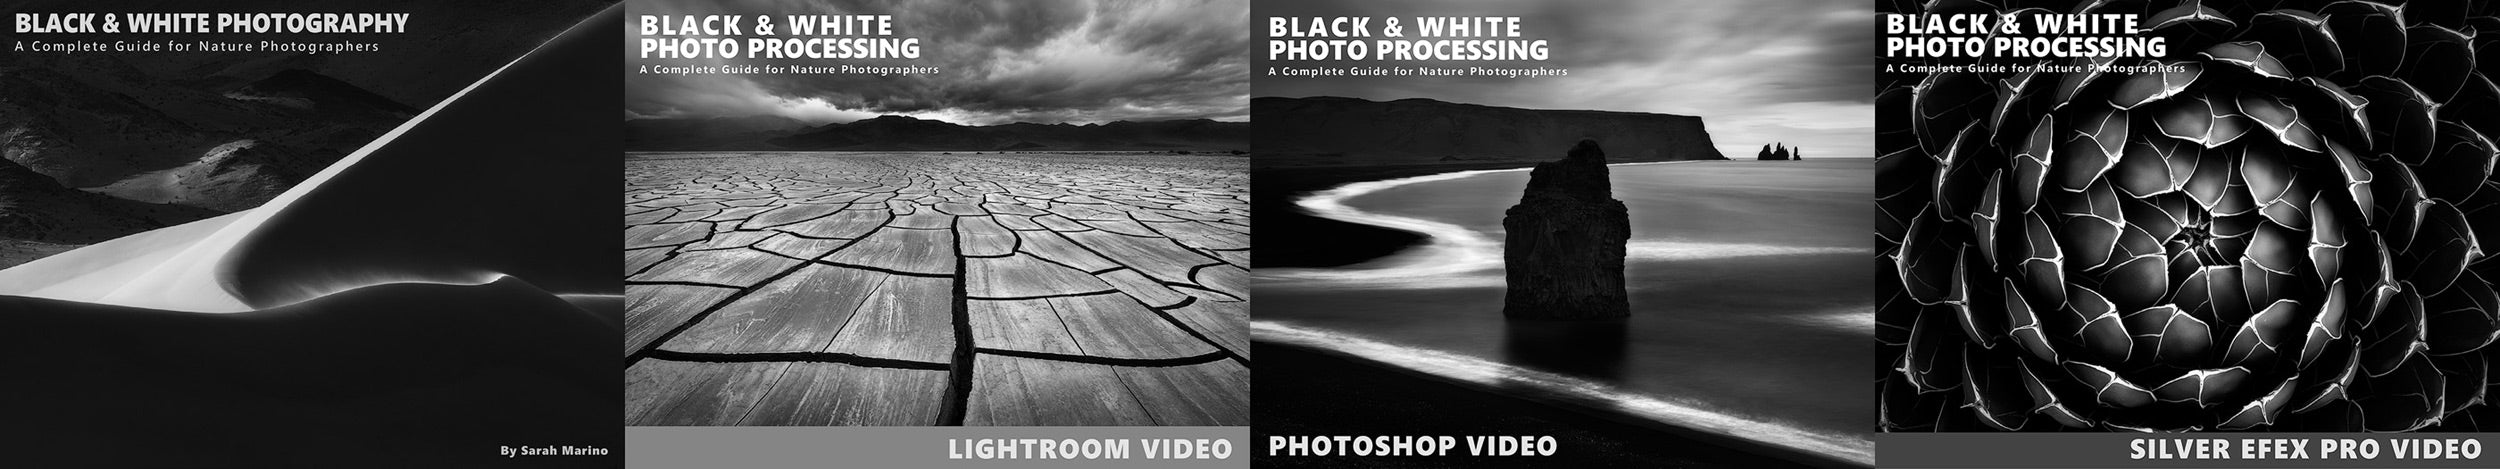 Black and White Course Module Covers